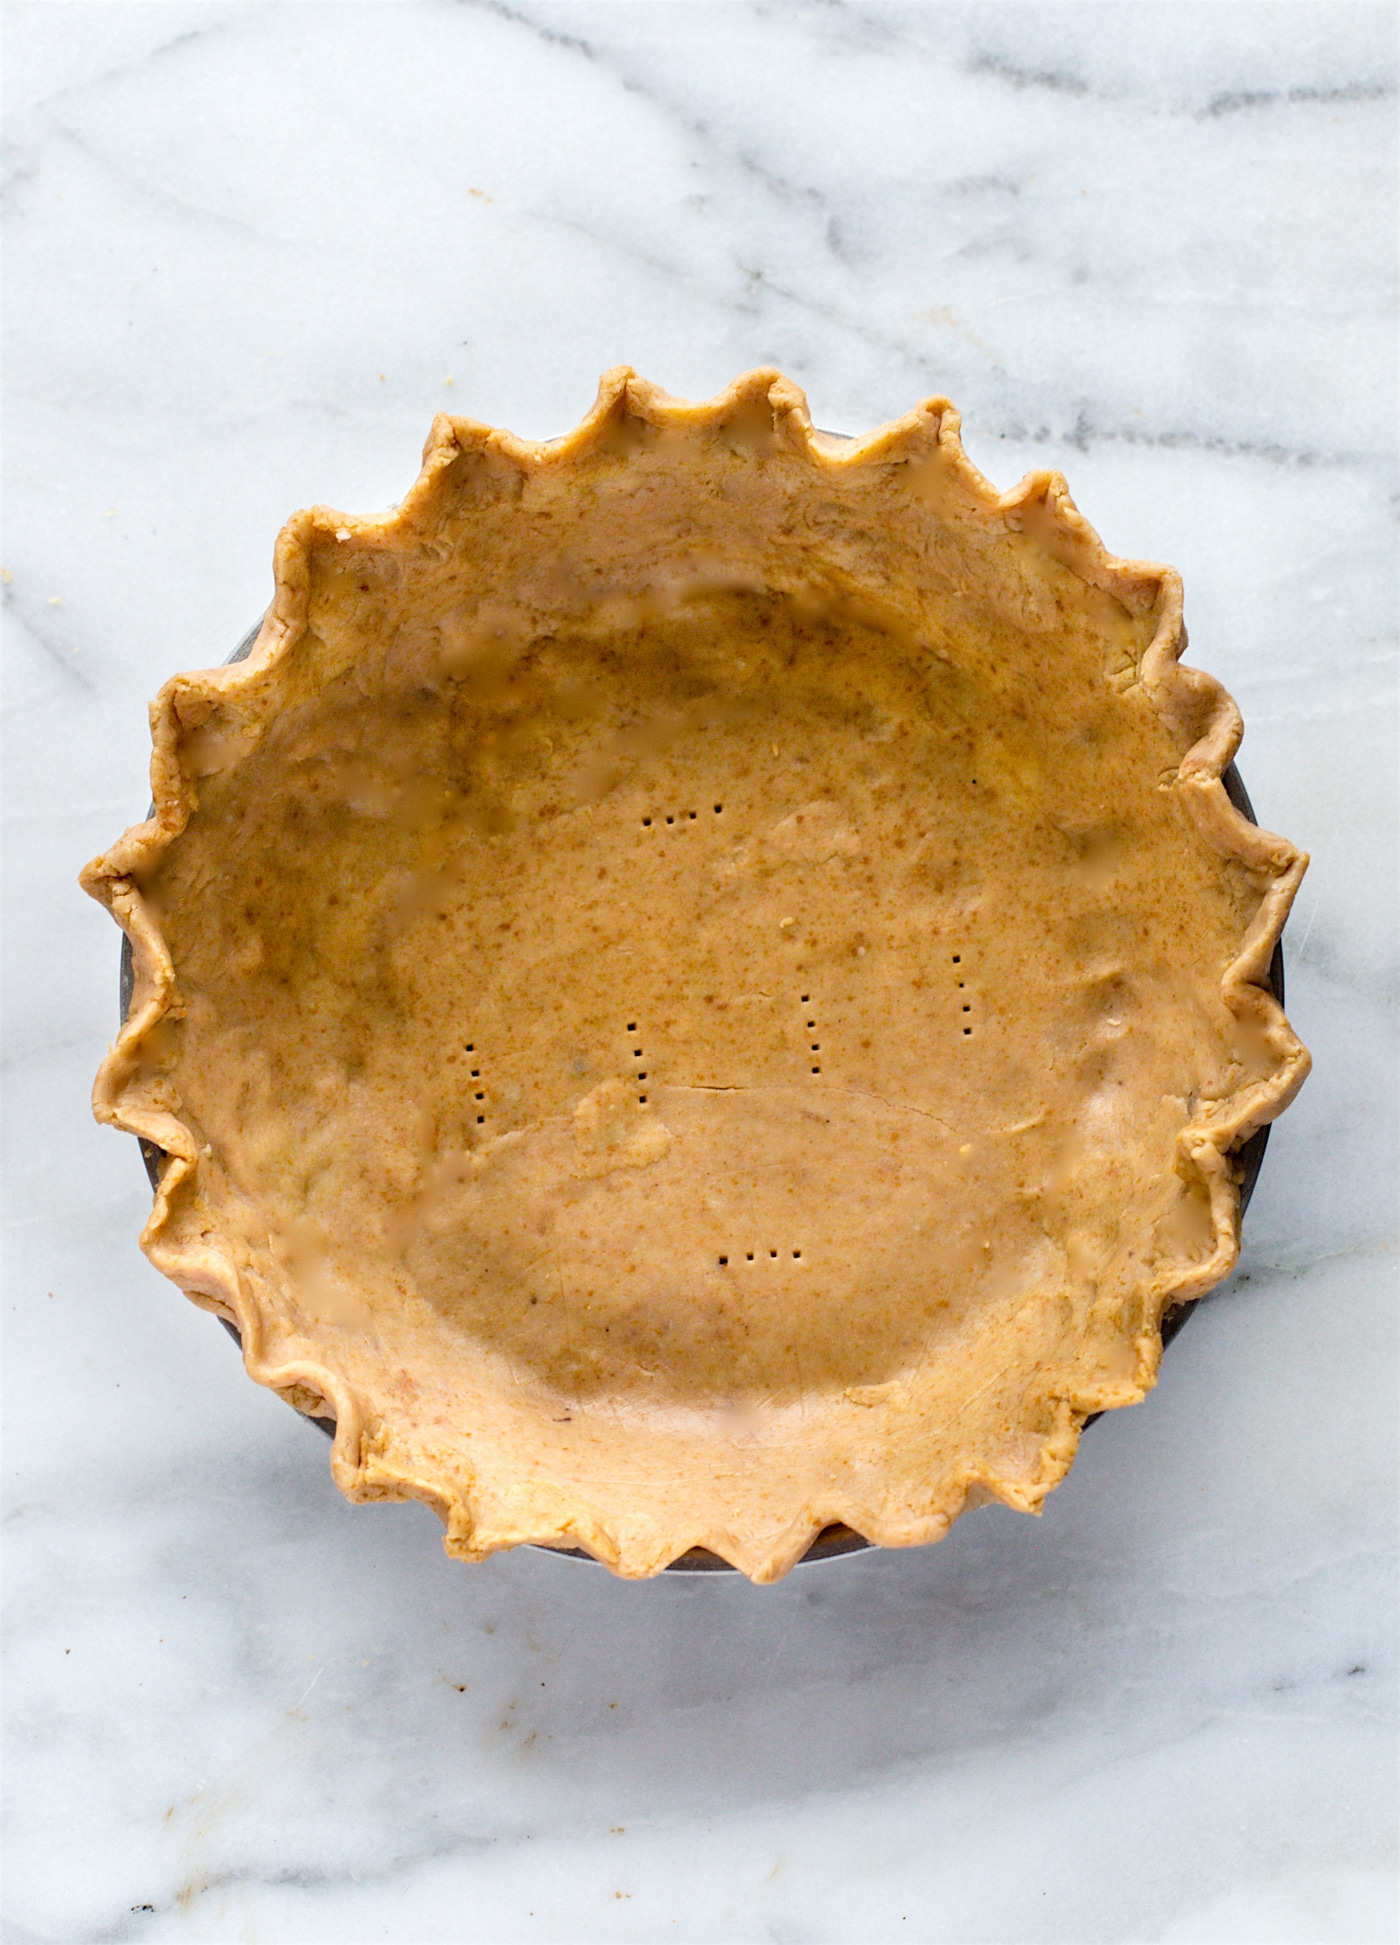 A 3 ingredient gluten free pie crust